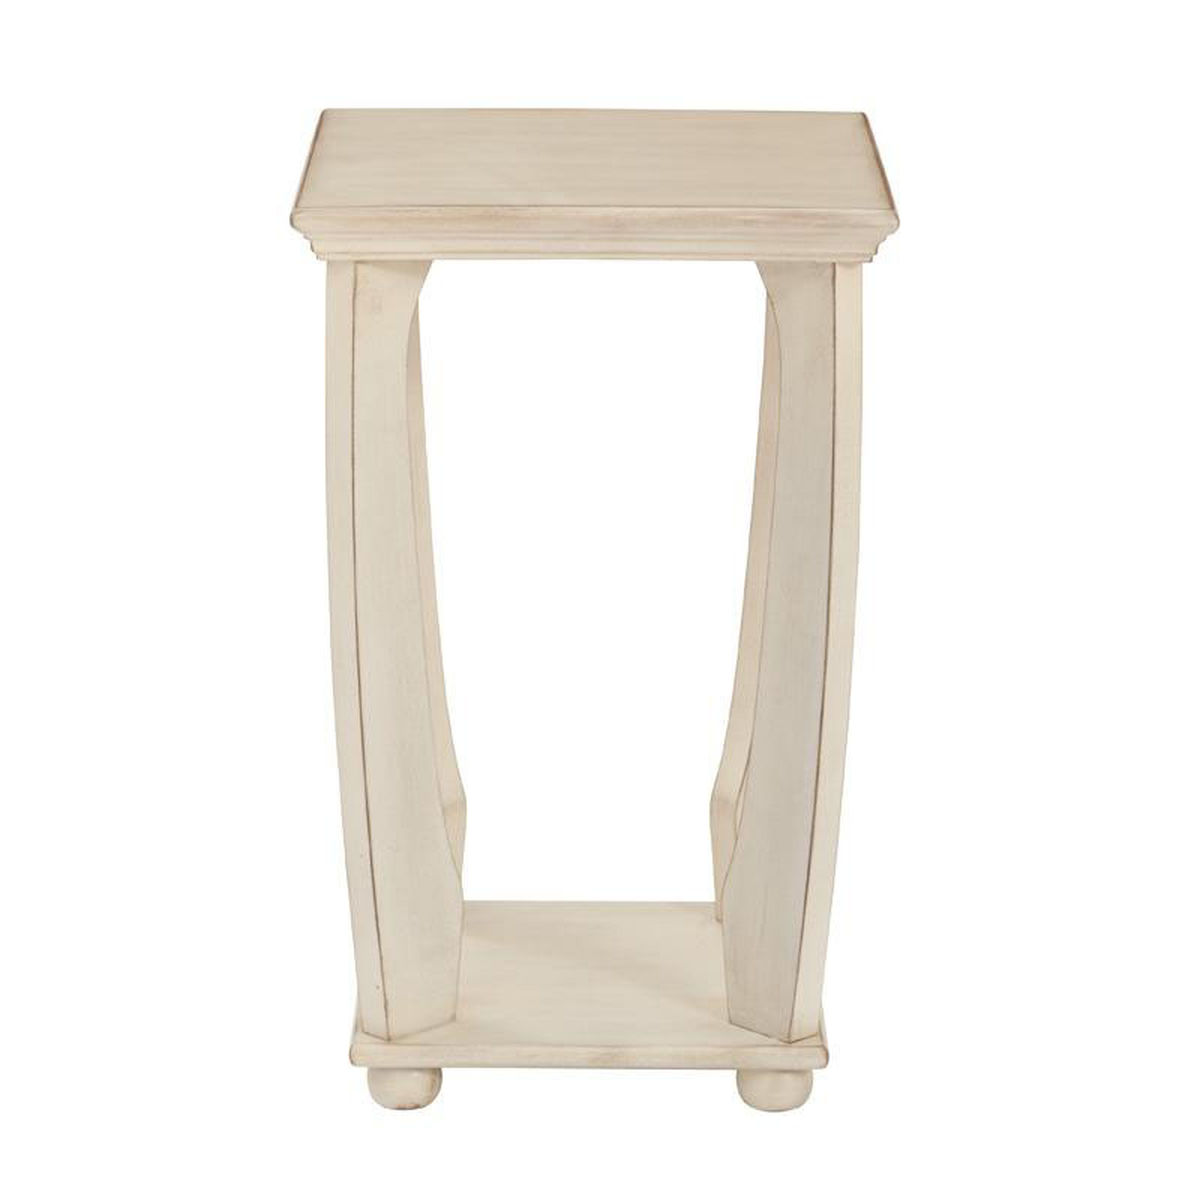 mila square accent table bizchair office star products white wood our osp designs antique now half for hallway italian marble coffee drop leaf styles round top small bedside lamps